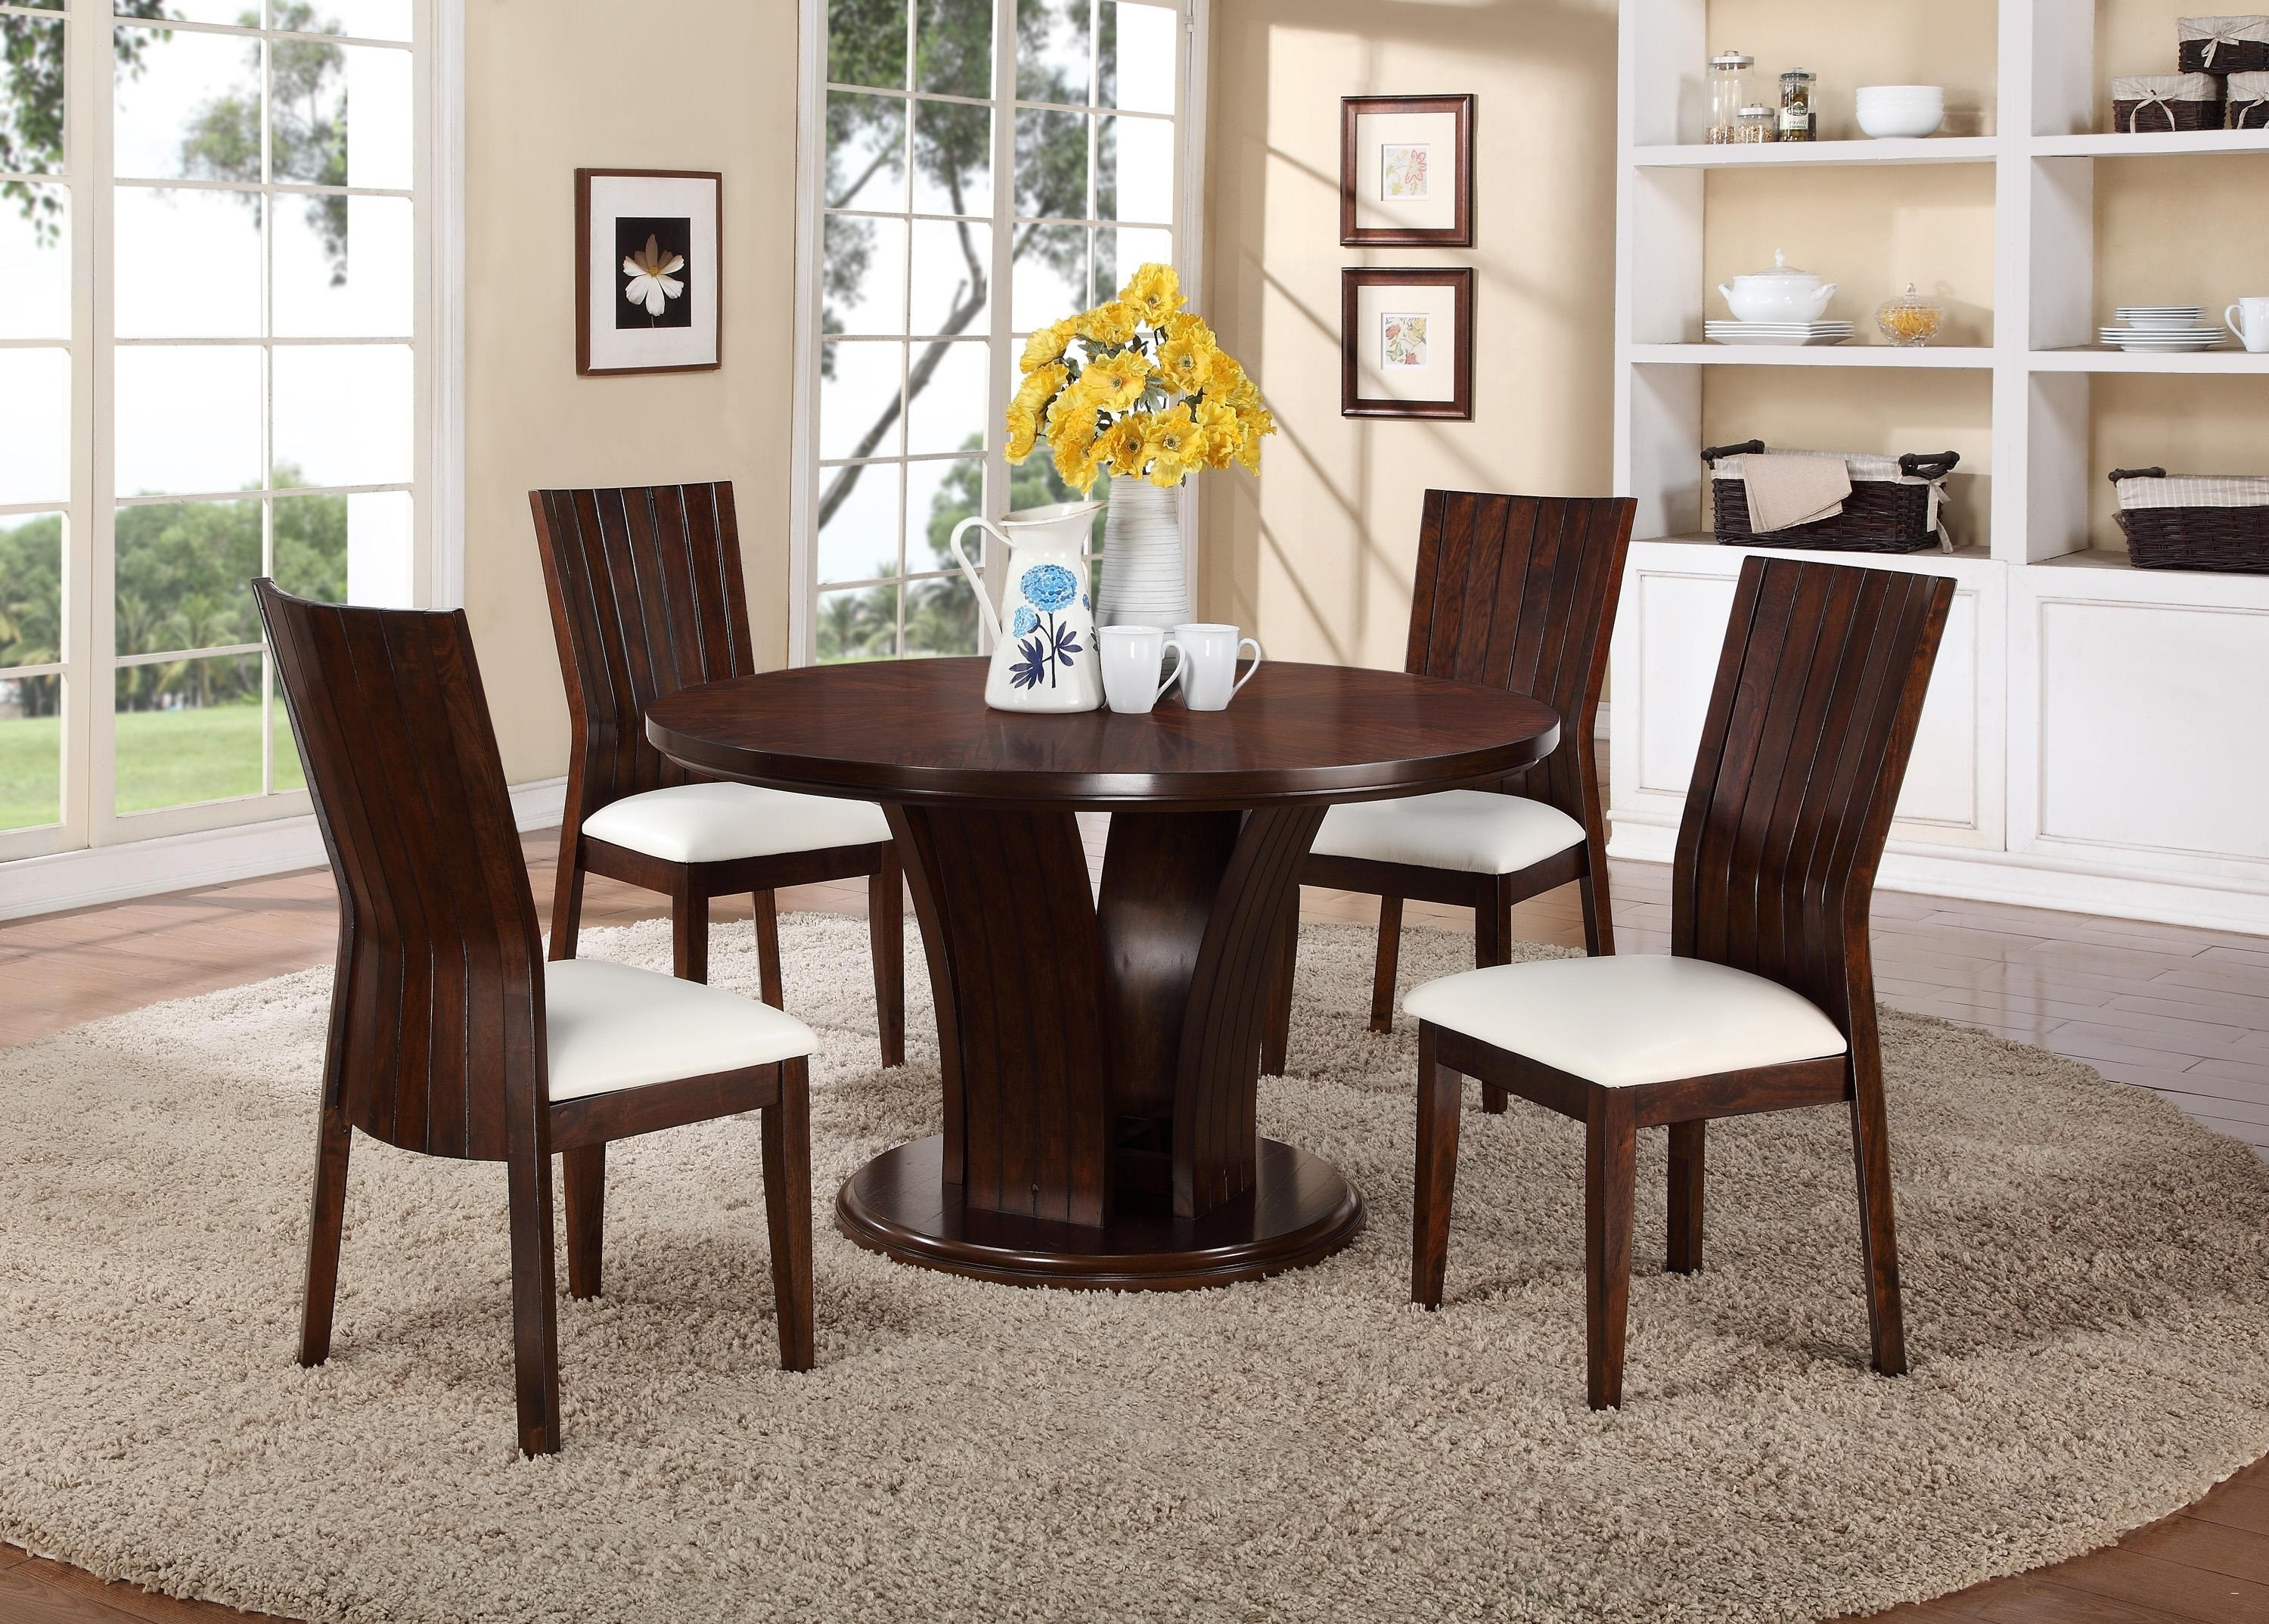 Ashton Round Pedestal Dining Table Elegant Kitchen Dining Area Throughout Most Popular Jaxon Grey 5 Piece Round Extension Dining Sets With Wood Chairs (View 15 of 25)